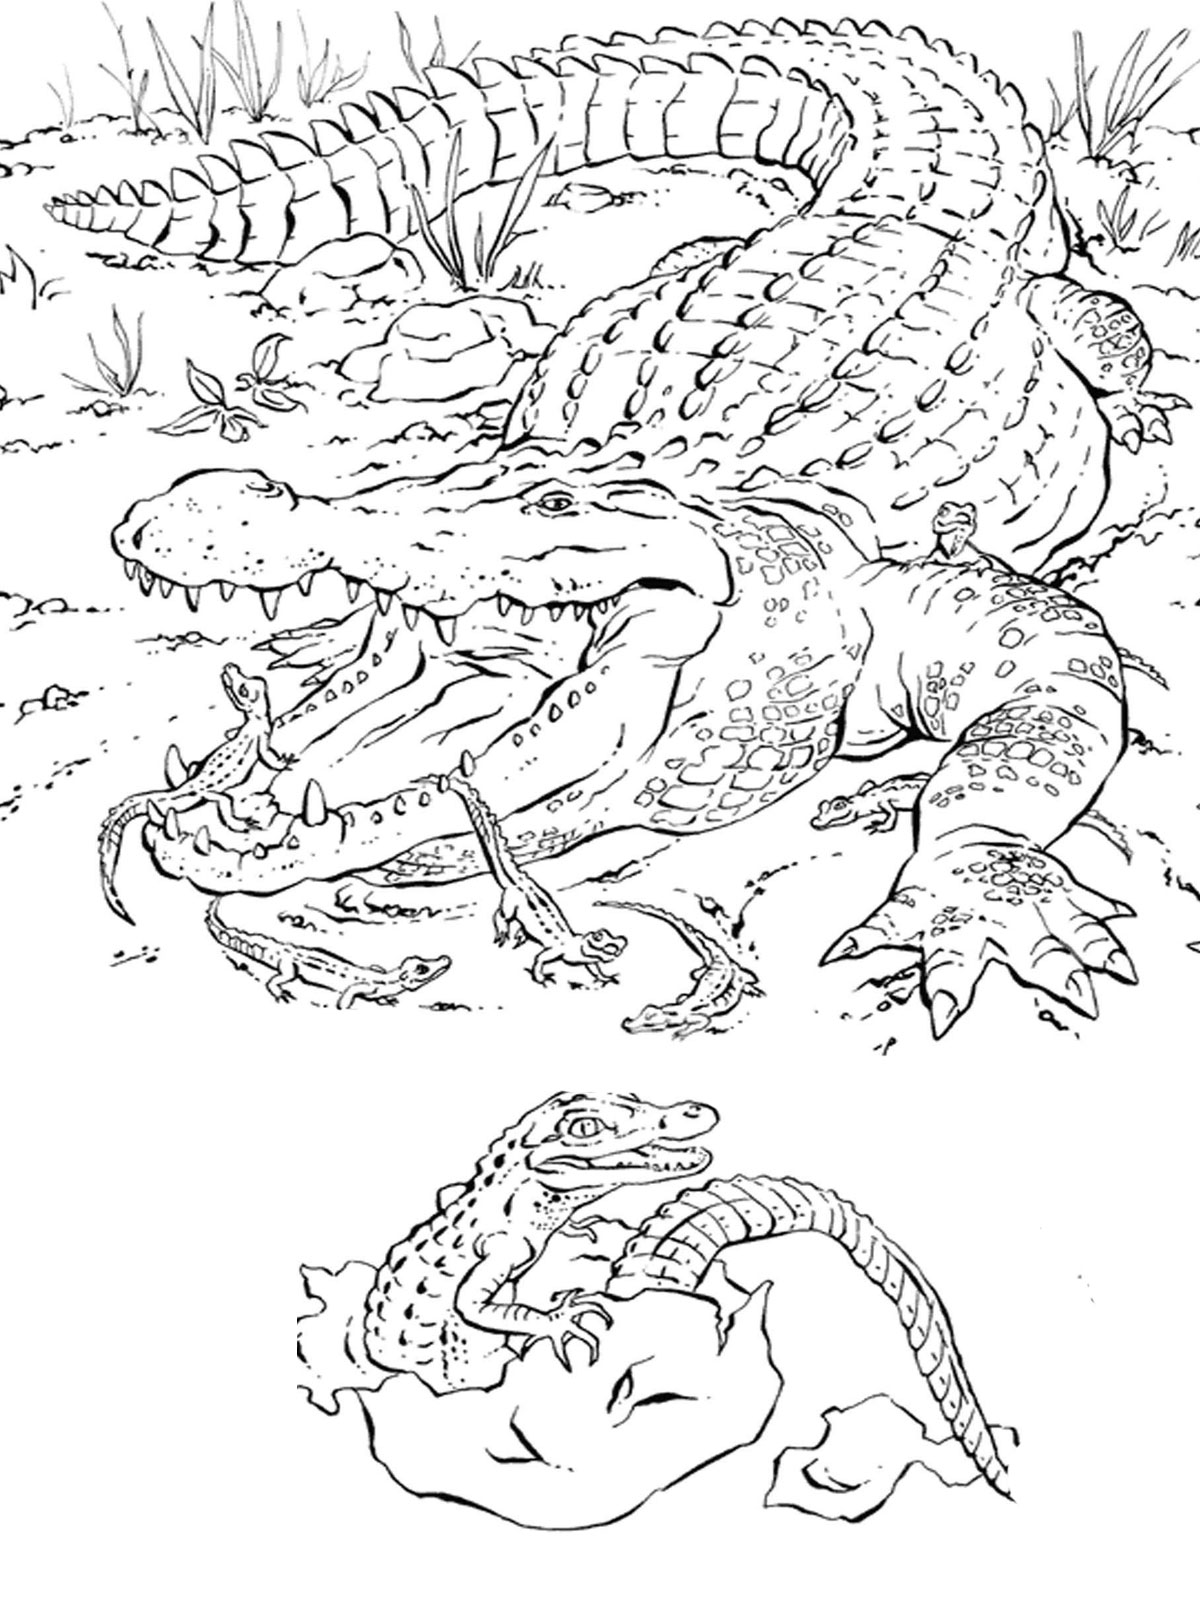 Coloring Pages Animals Realistic : Realistic alligator coloring pages